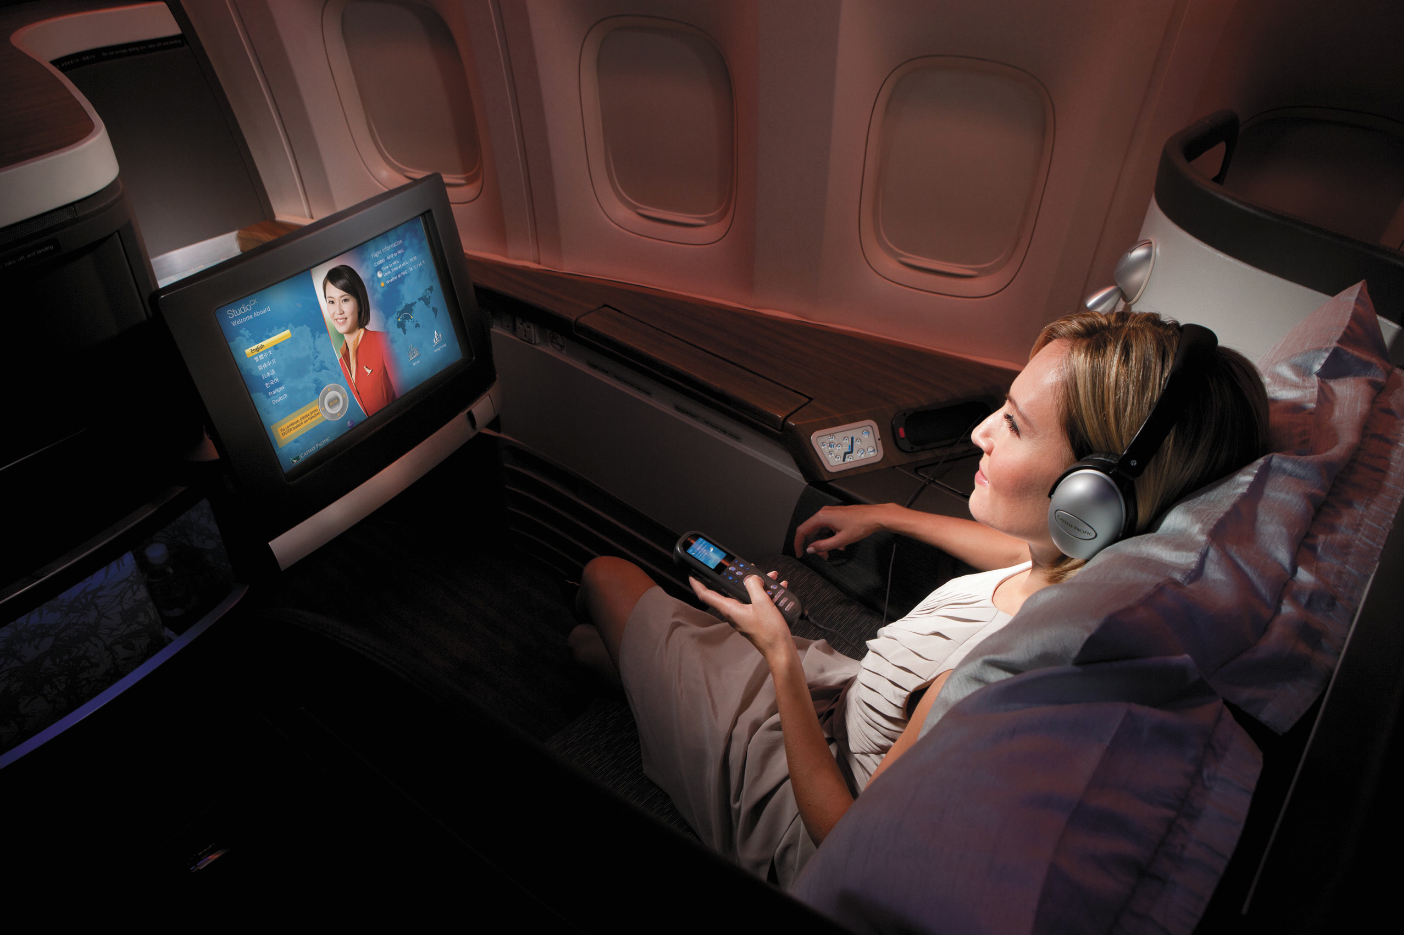 A Boeing 777 equipped with four classes of service will fly the route.